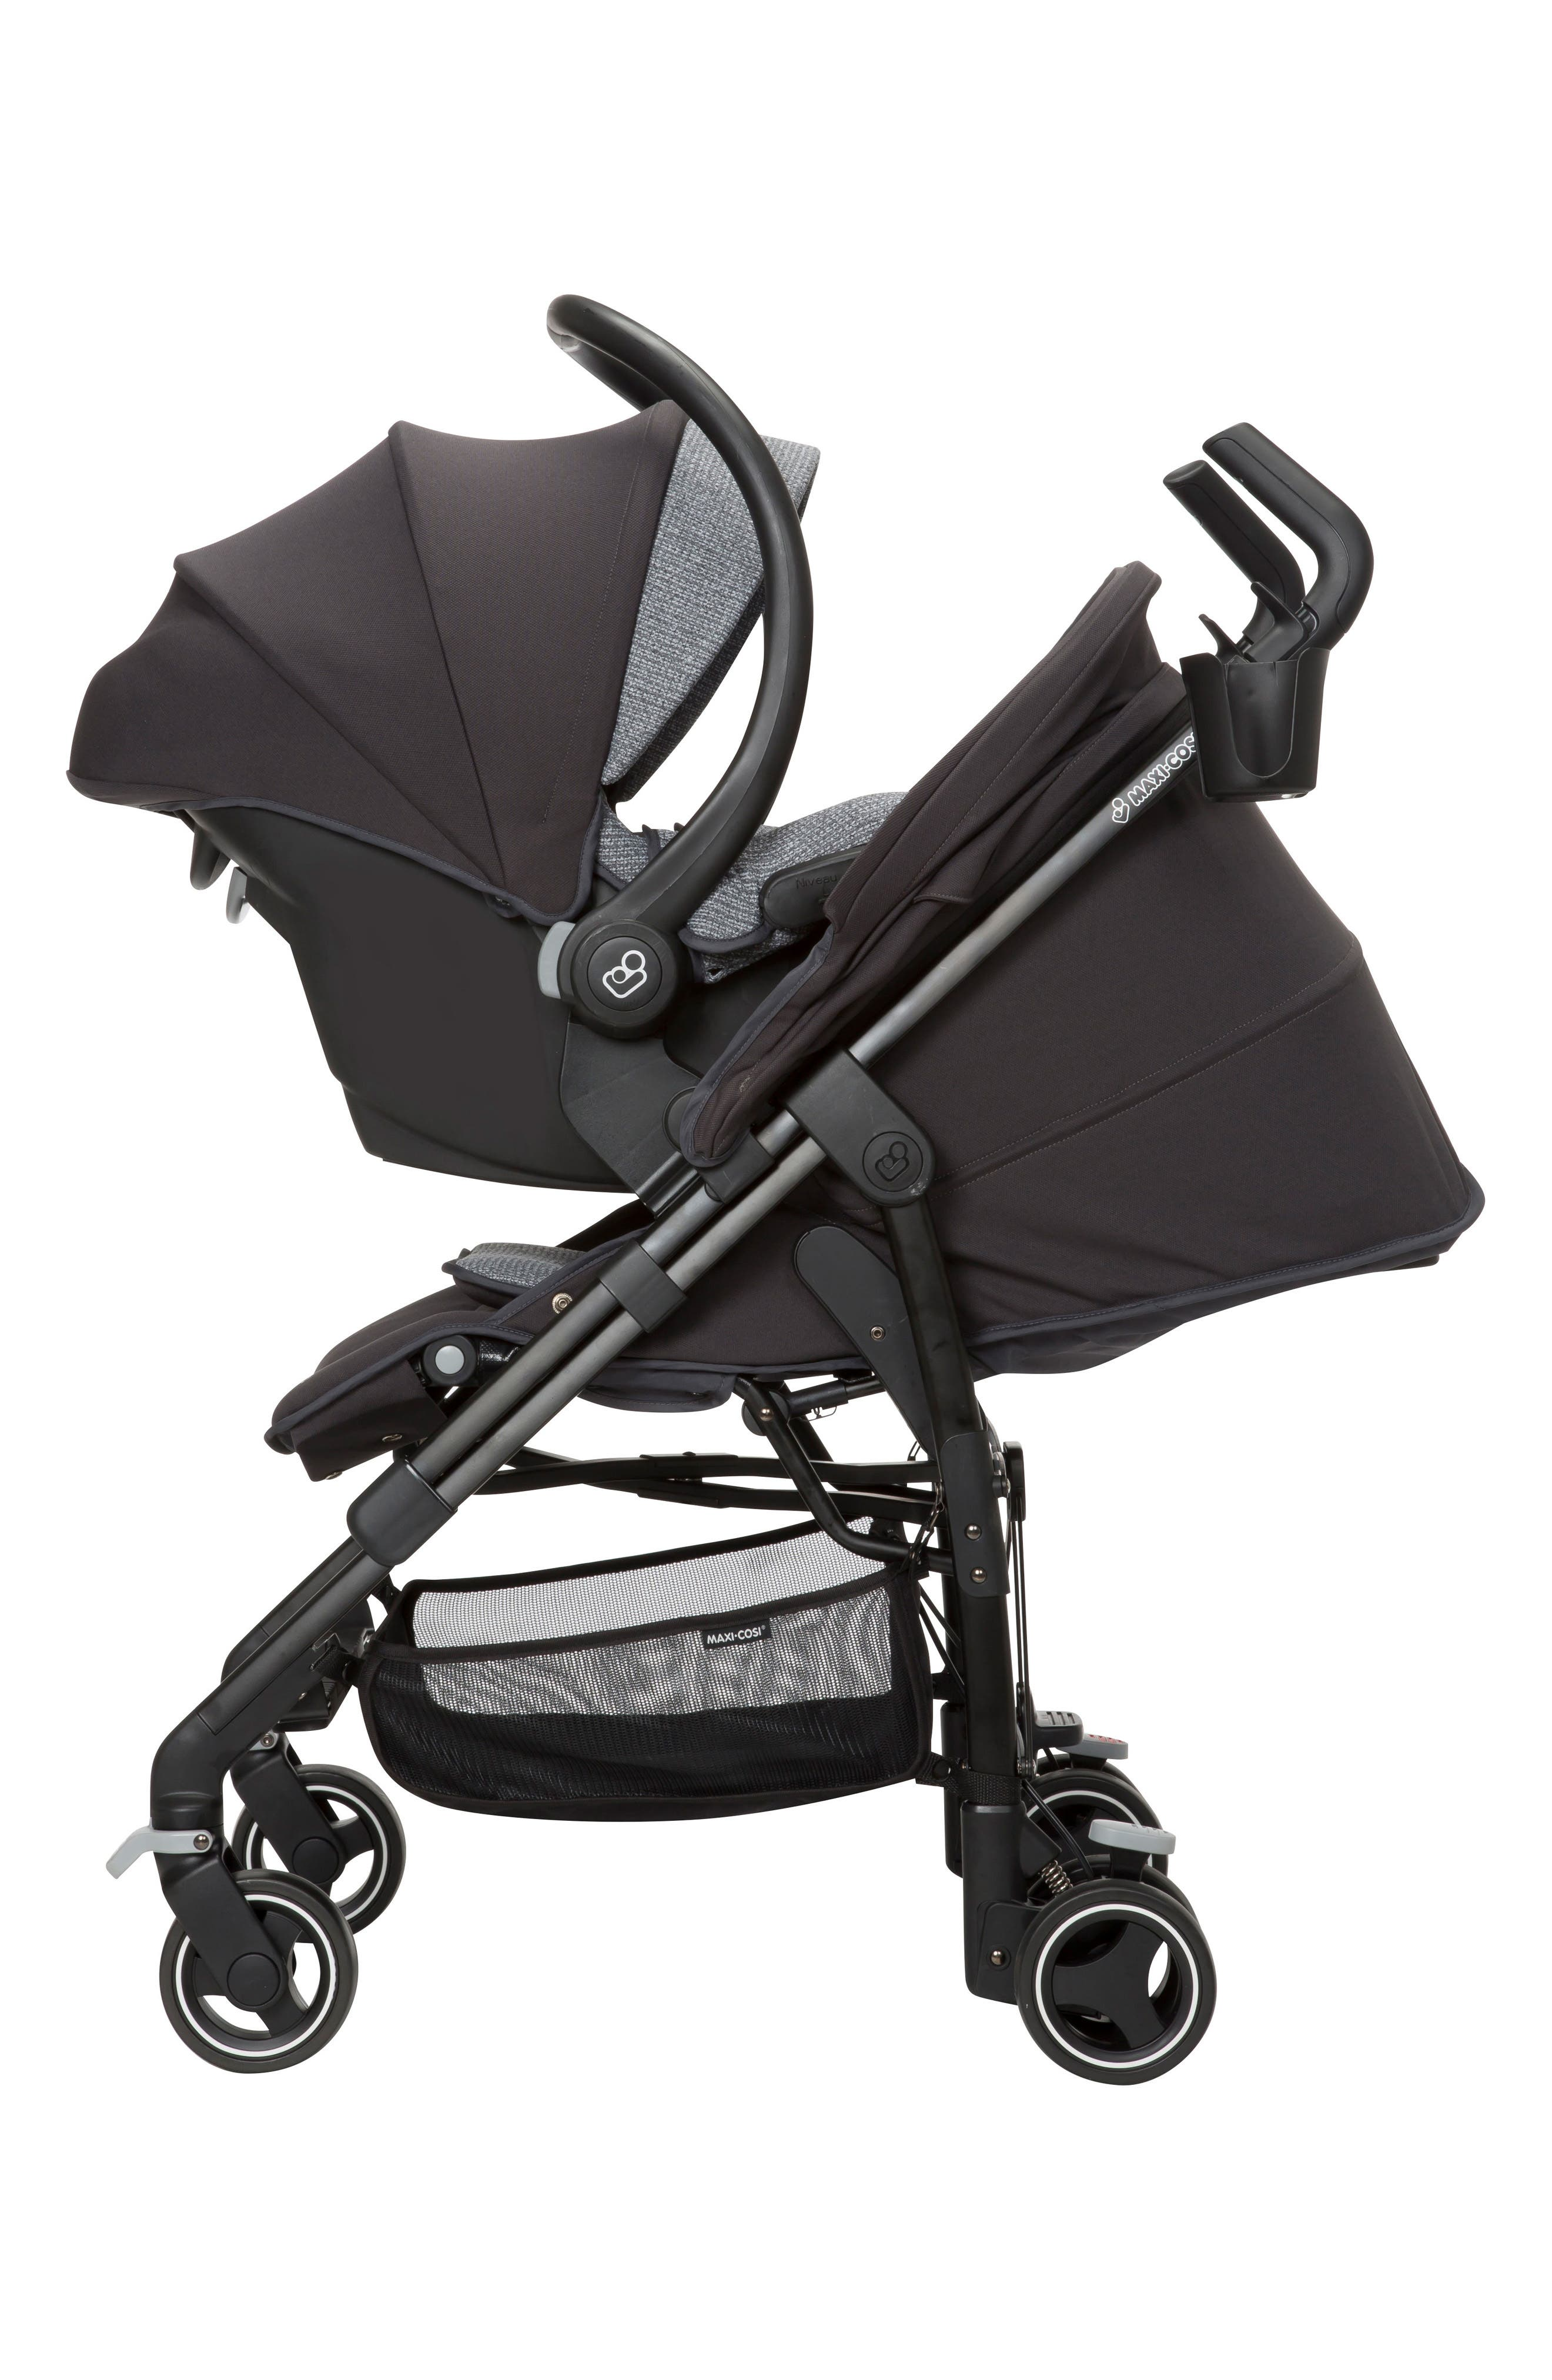 Dana Sweater Knit Special Edition Stroller,                             Alternate thumbnail 12, color,                             024